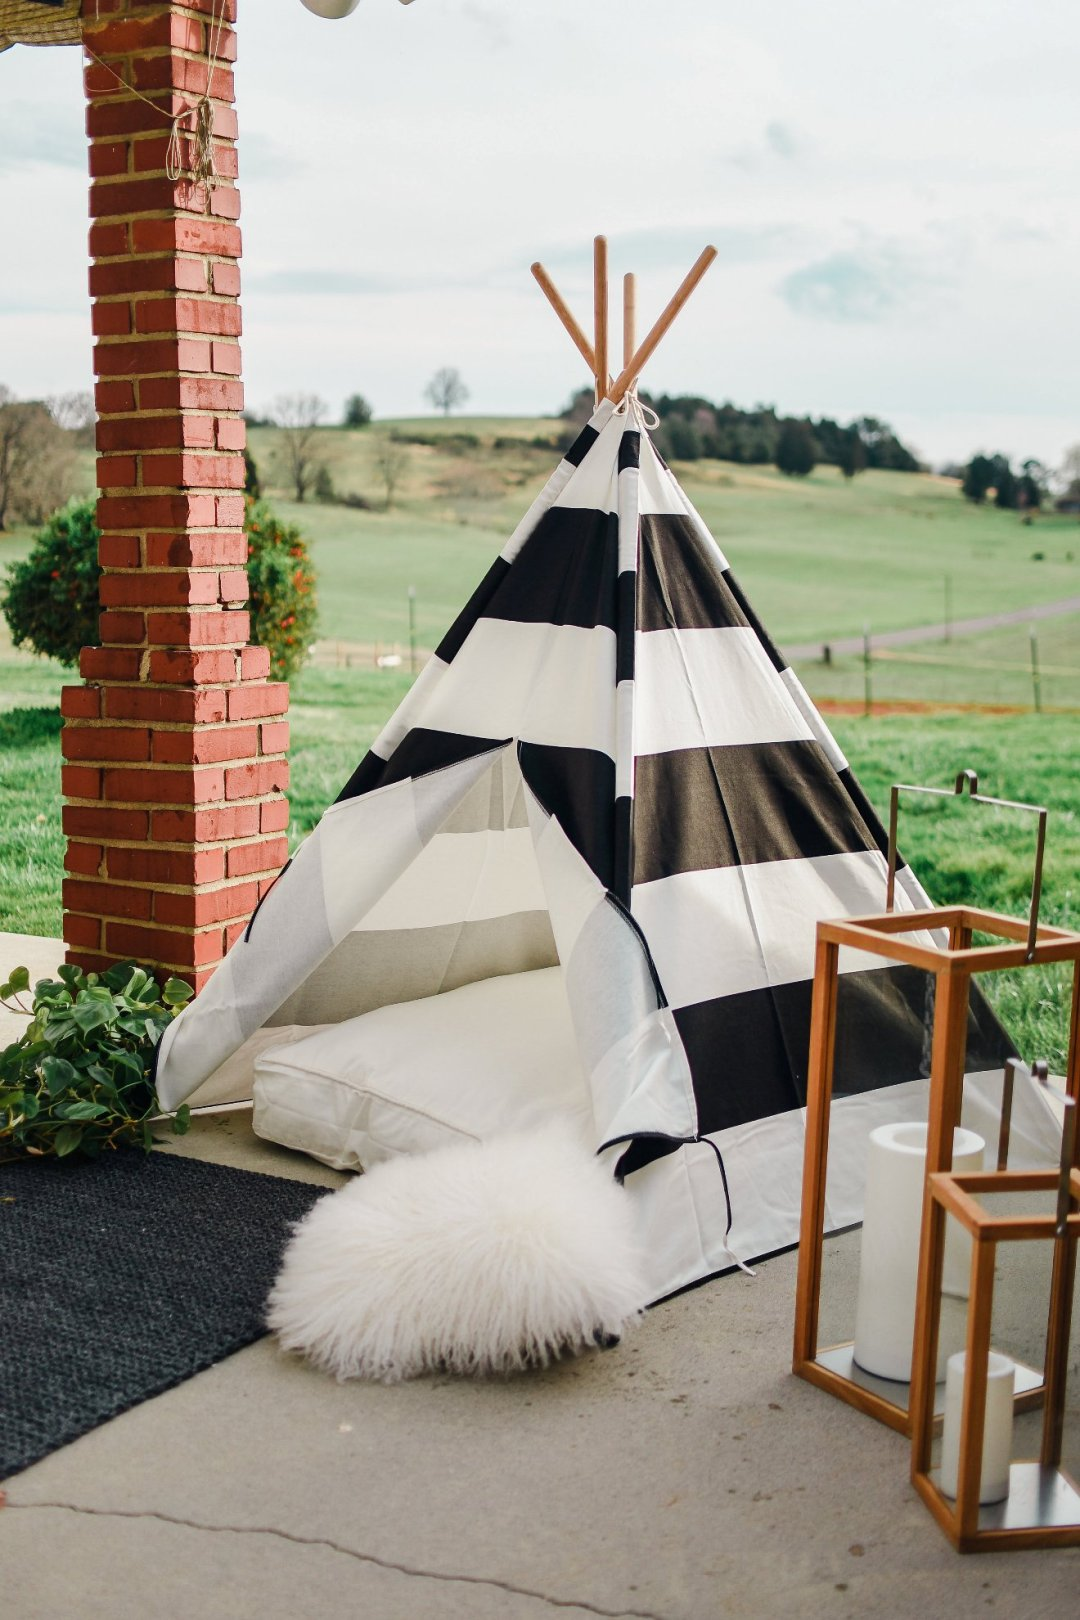 View of black and white striped teepee with lanterns to the right